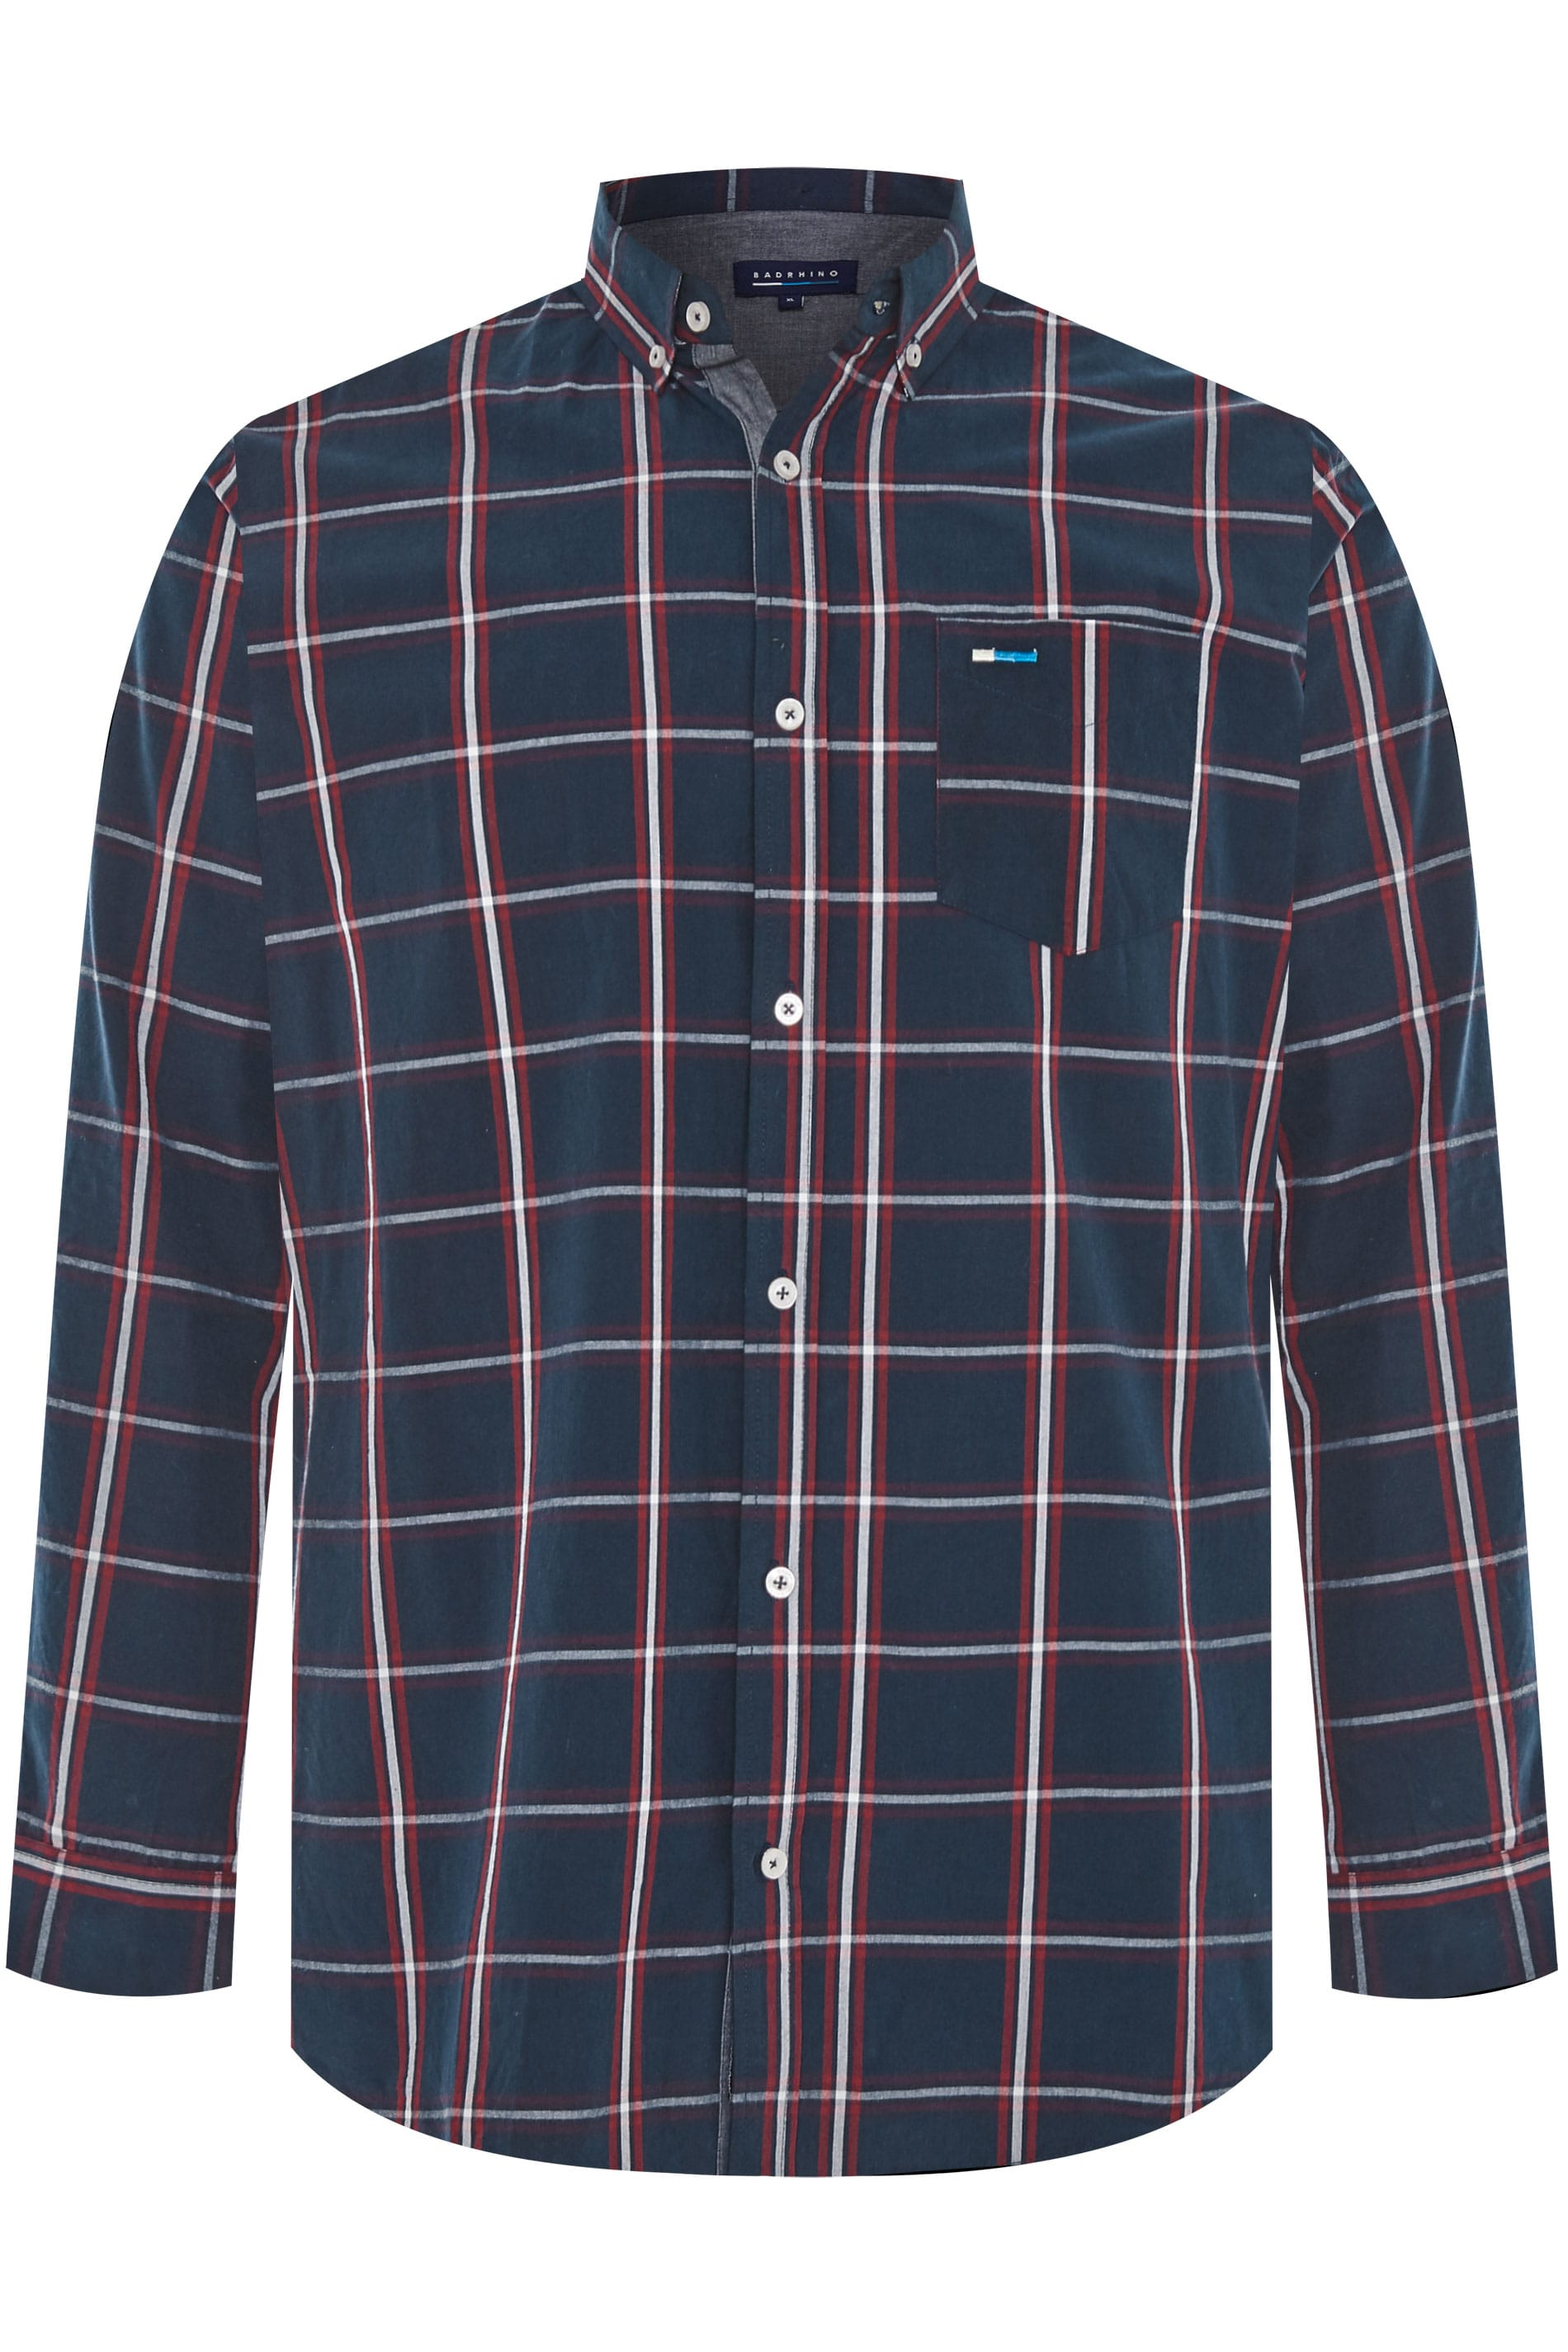 BadRhino Navy Peached Large Check Shirt